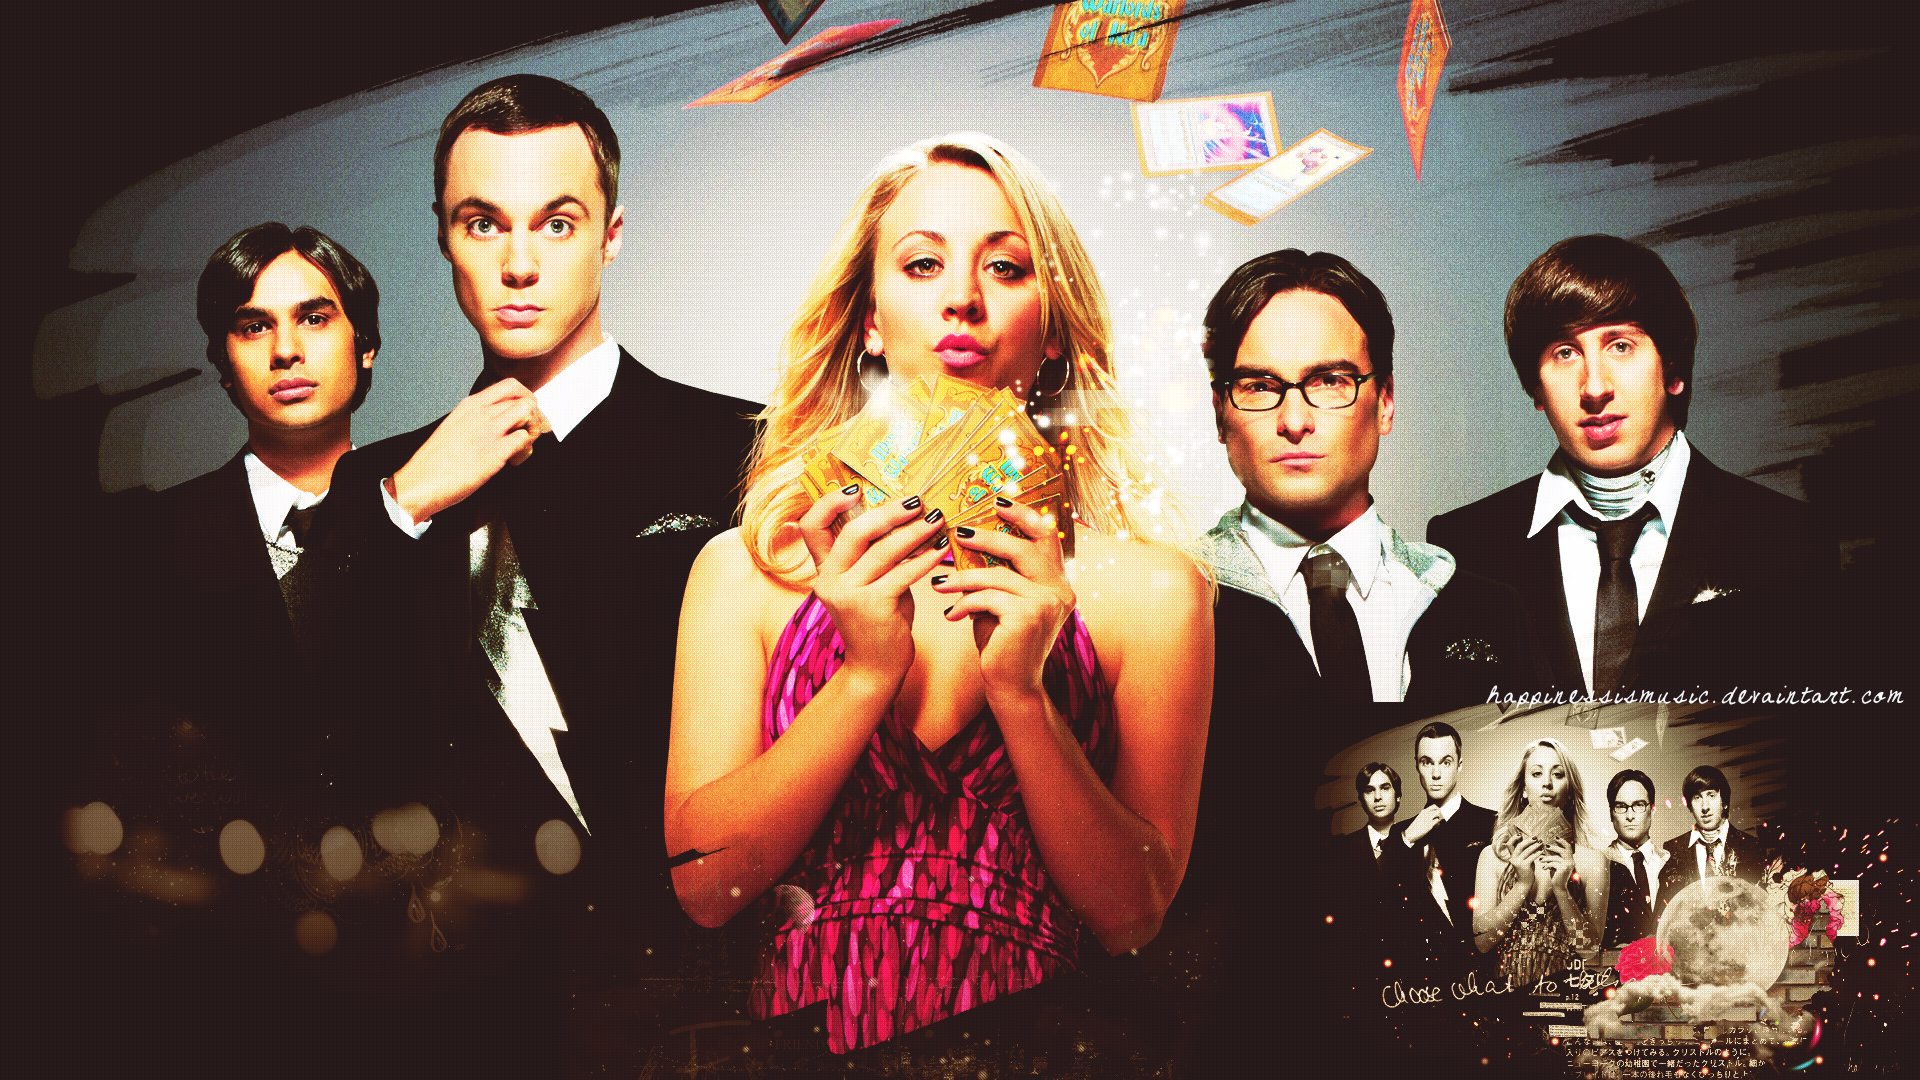 the big bang theory wallpaper 6 by happinessismusic on